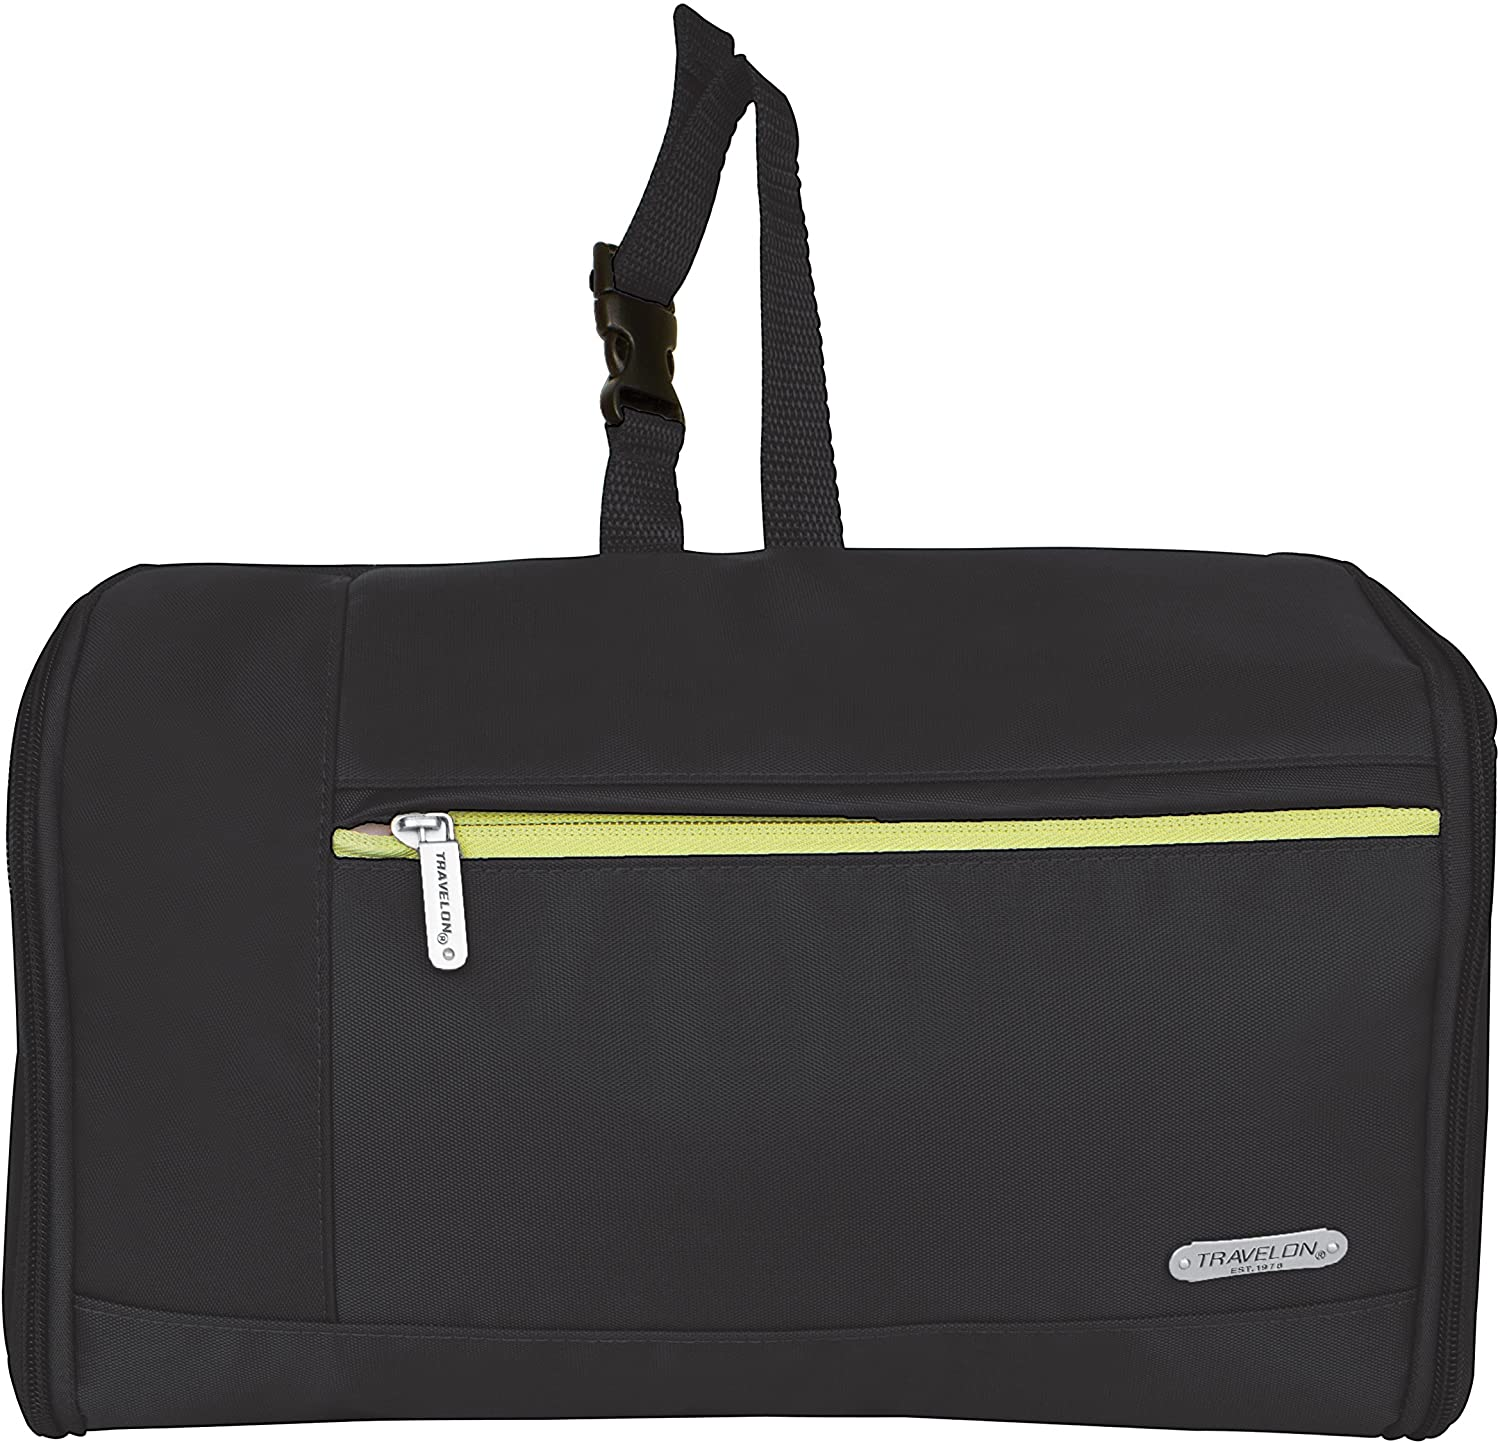 Travelon Flat-out Toiletry Kit Black, One Size